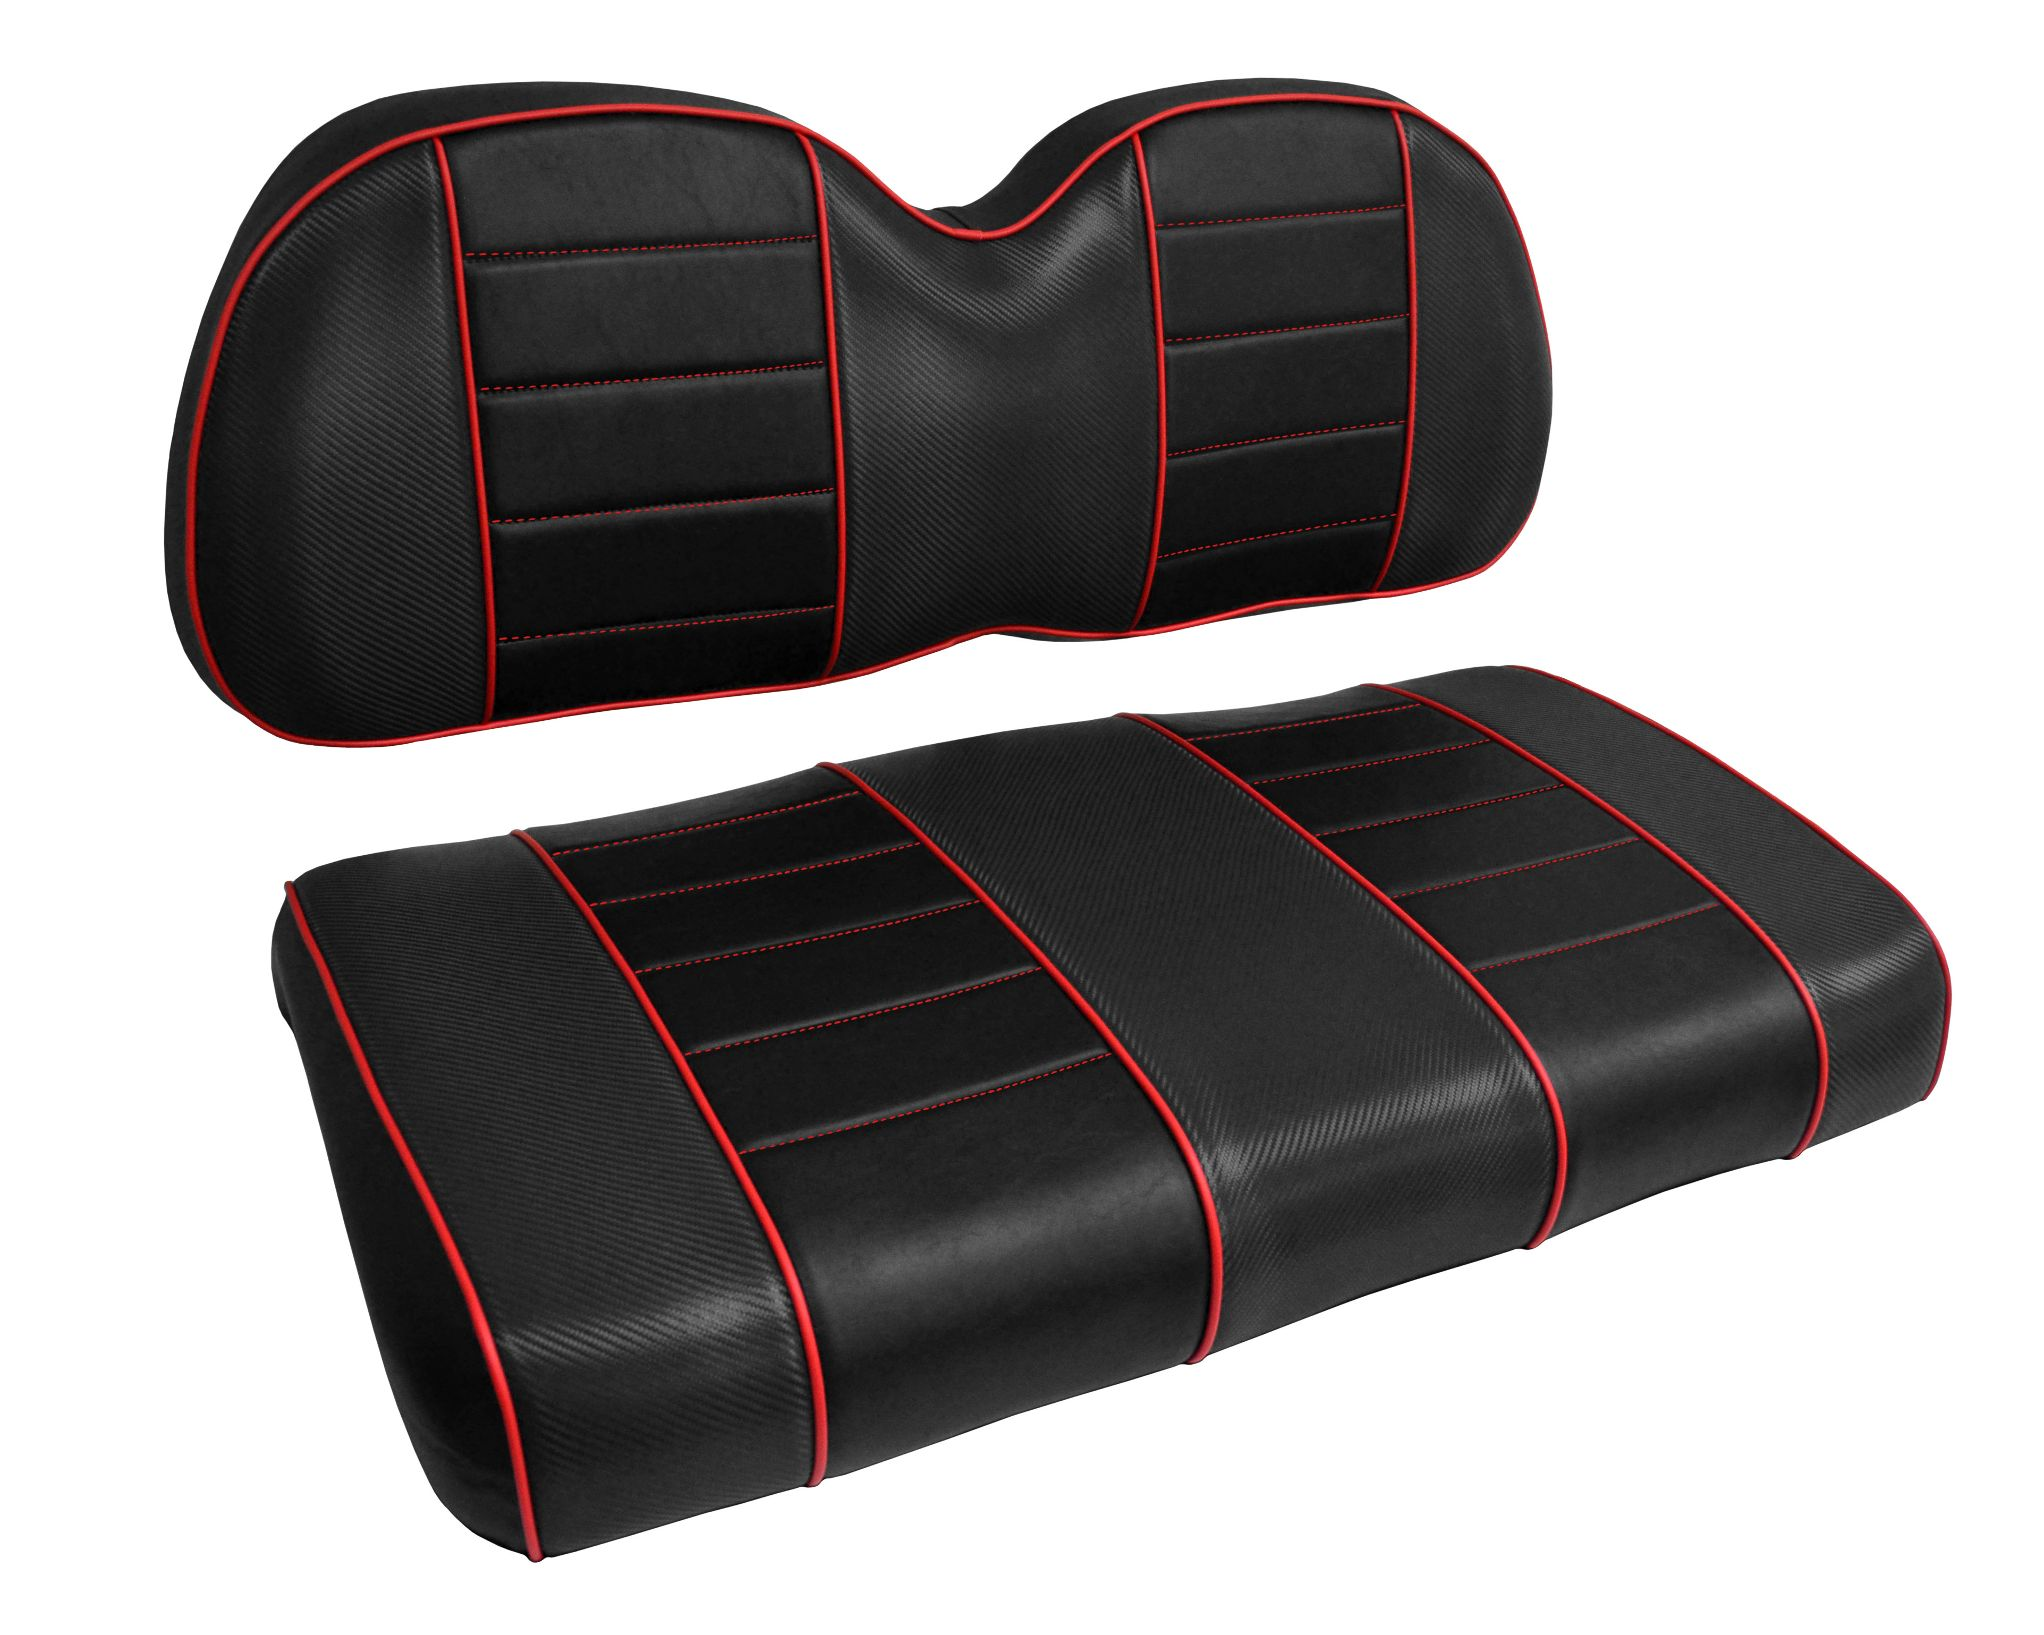 yamaha g1 golf cart bucket seat covers the best cart. Black Bedroom Furniture Sets. Home Design Ideas